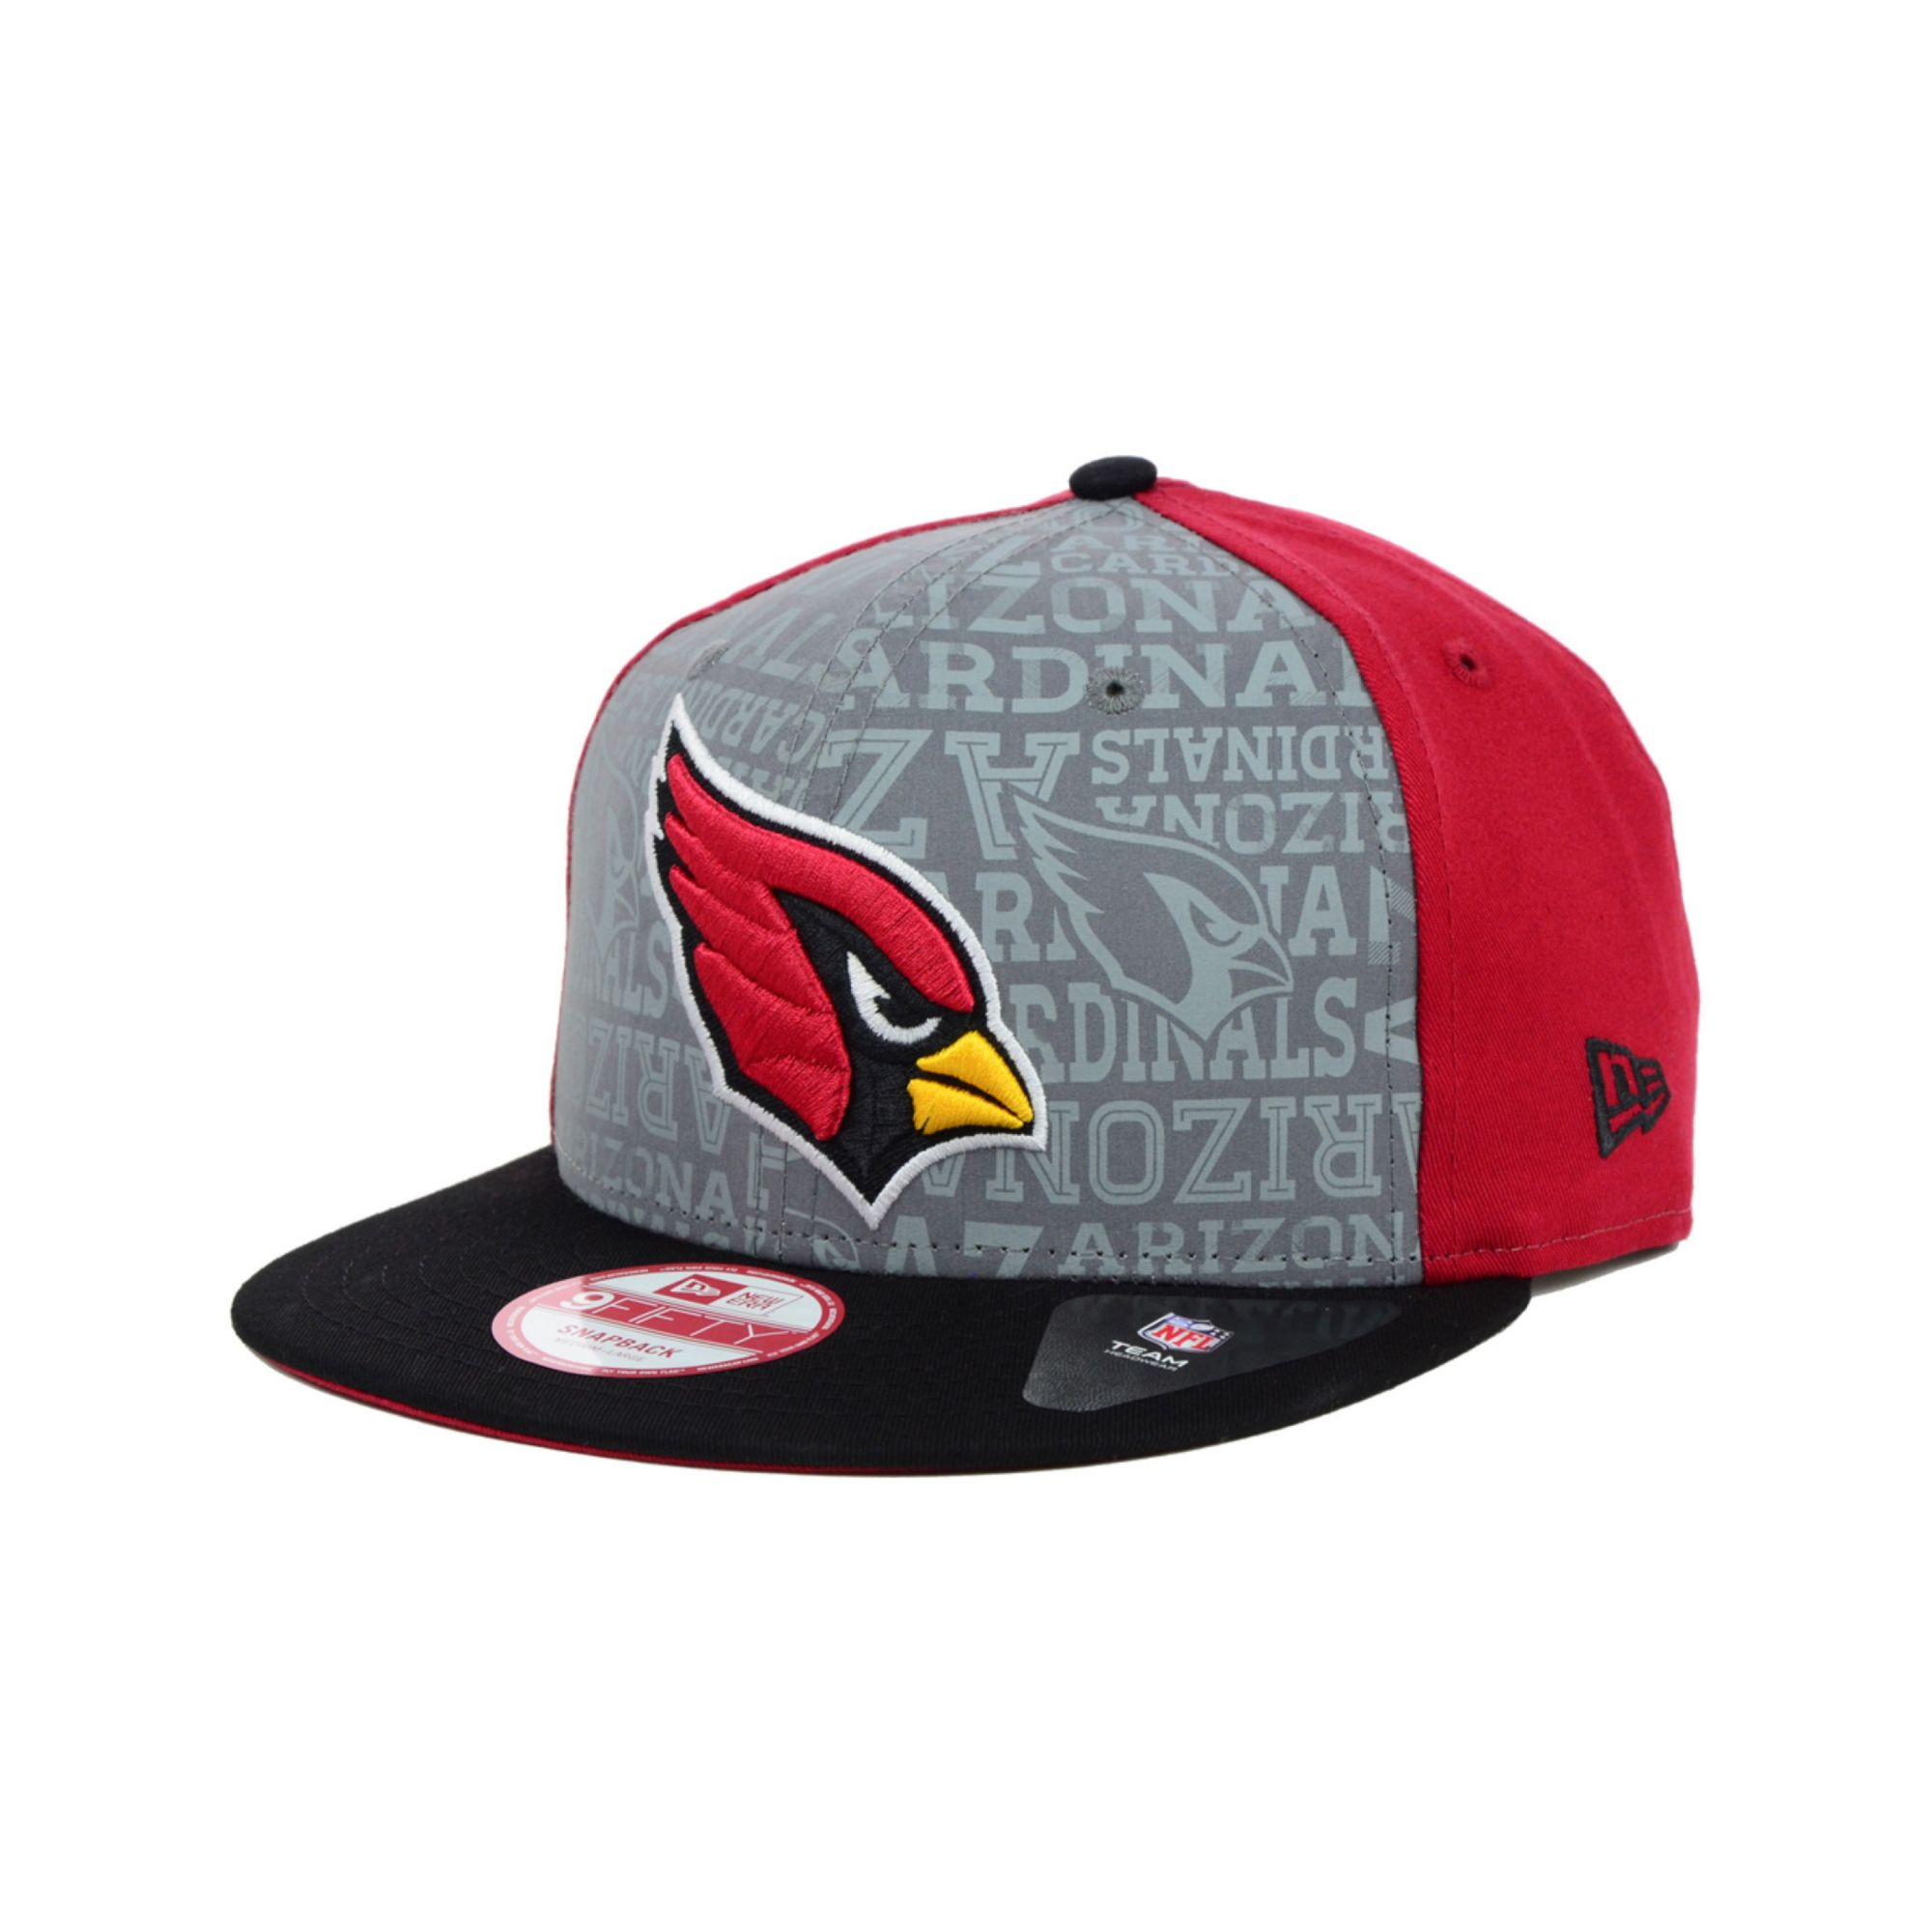 58fcb6ea79499e ... new era nba gold rush pin 9fifty snapback cap 40bf2 7f3c0; switzerland  best deals on e4c7f 8561c lyst ktz kids arizona cardinals nfl draft 9fifty  ...